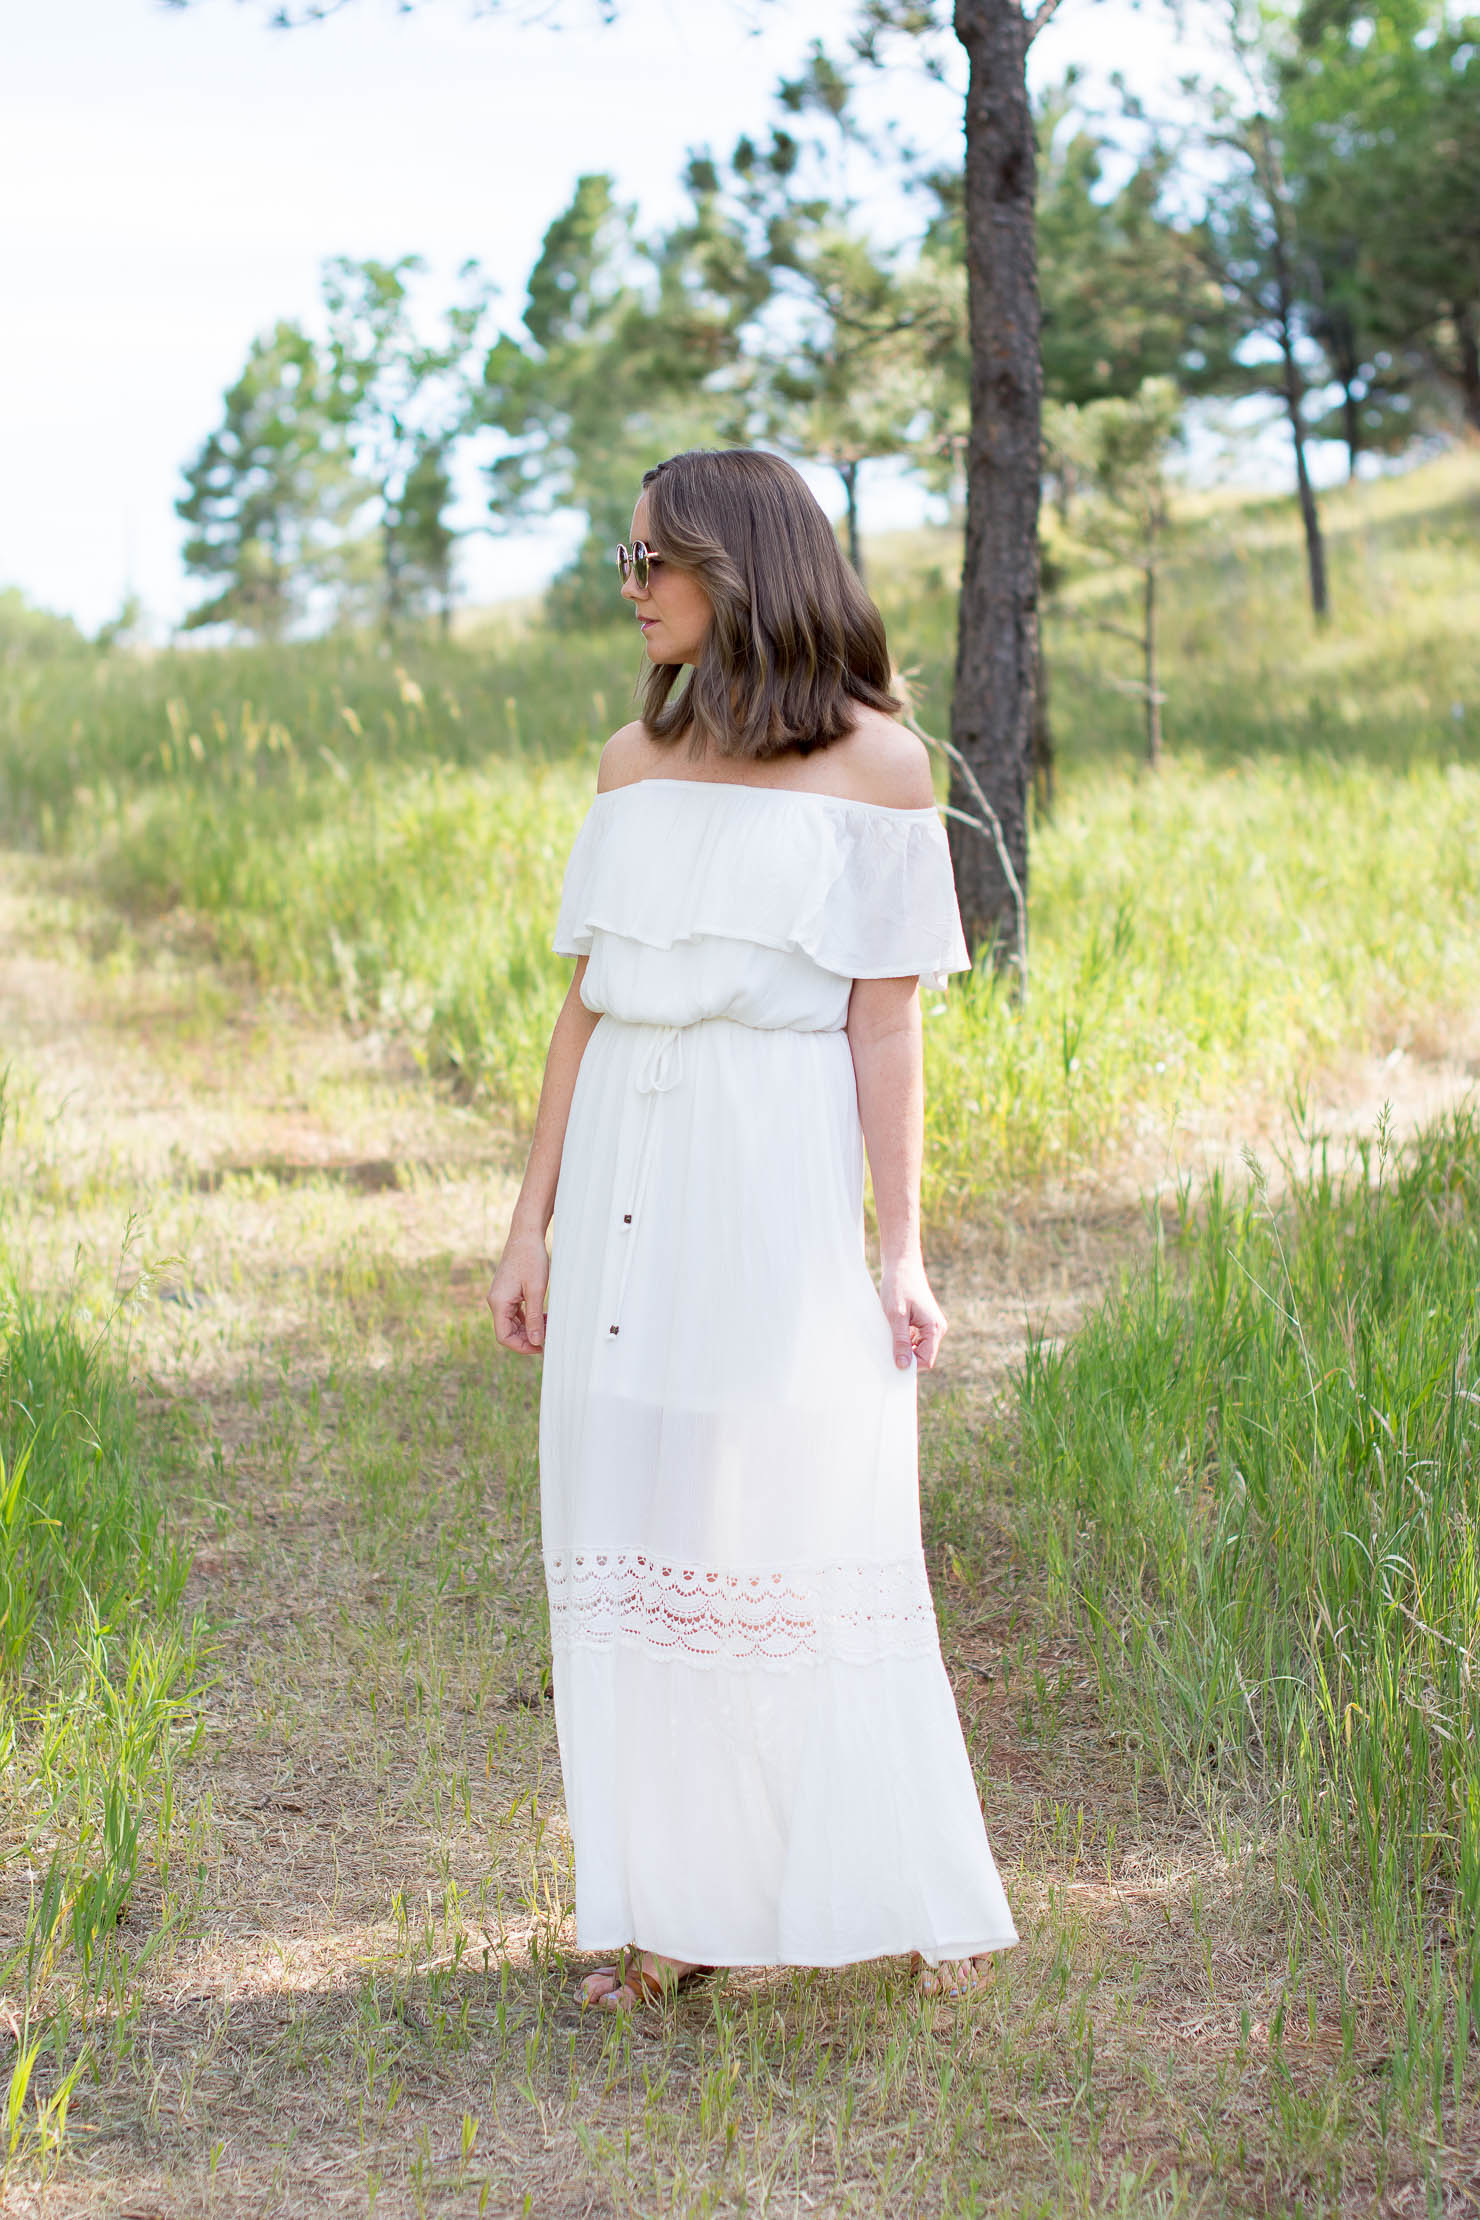 endless summer, 10 things you didn't know about me, off she shoulder white maxi dress, black hills